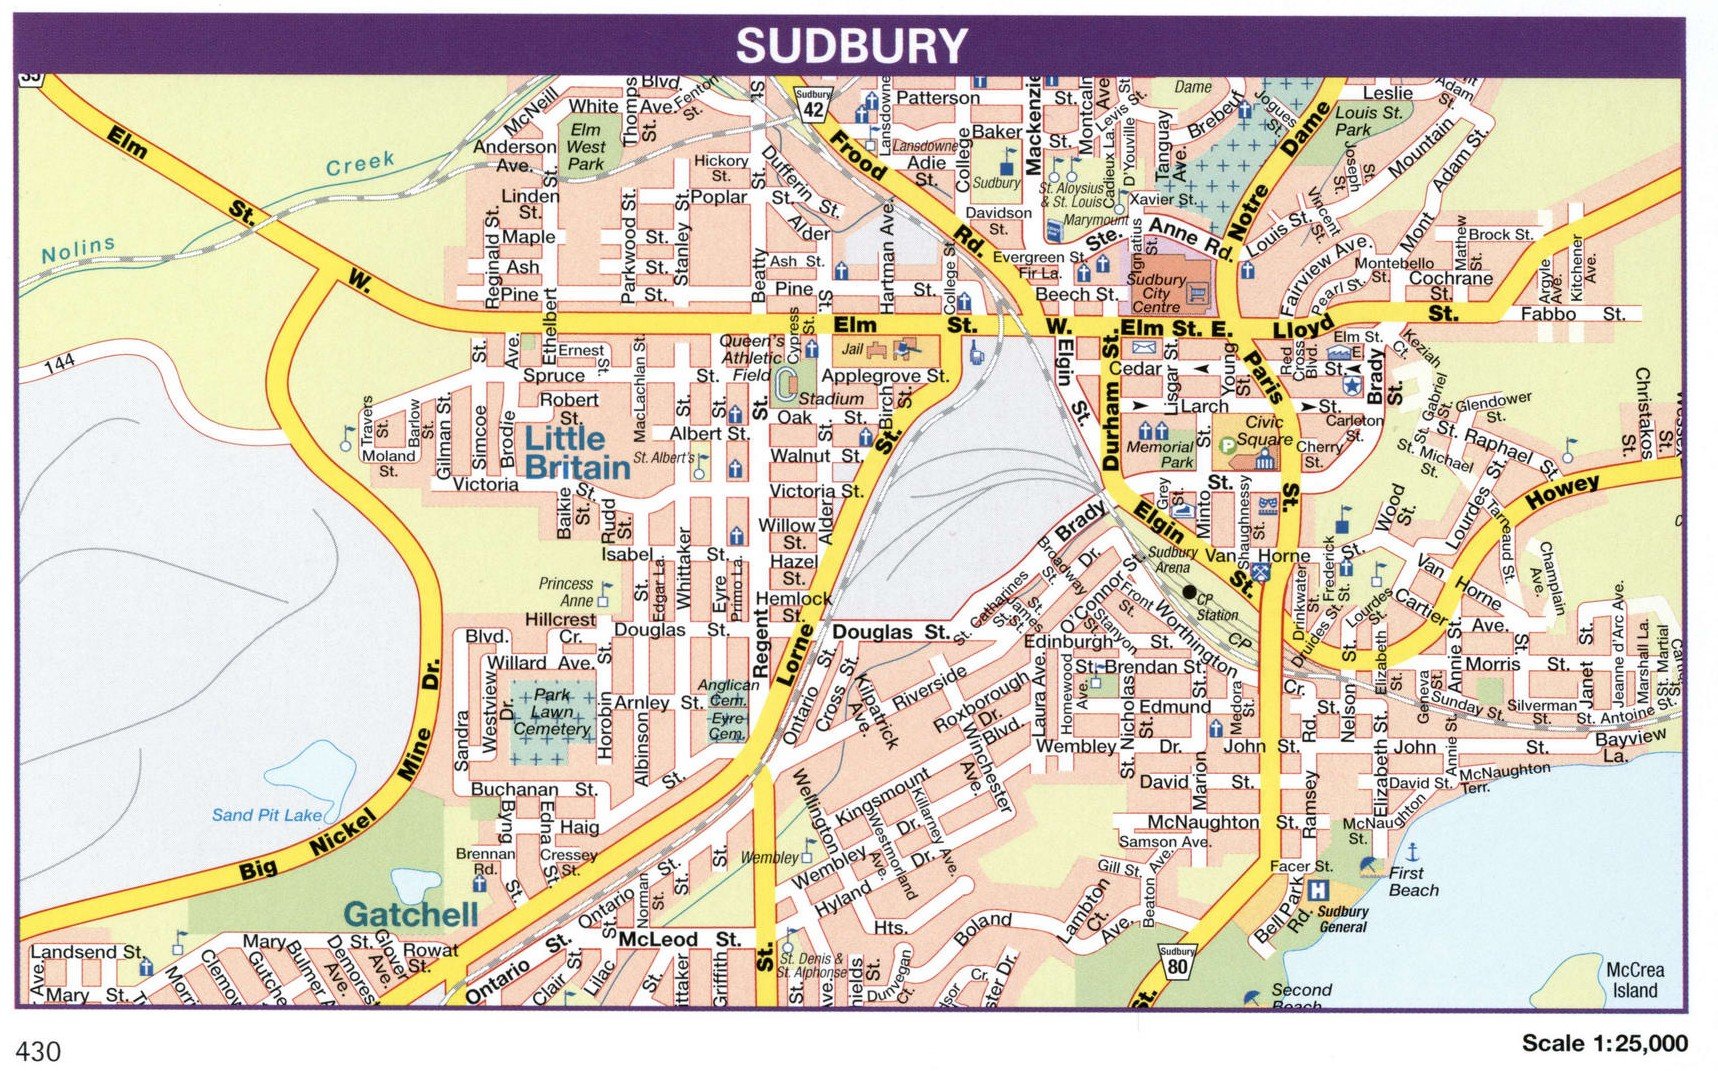 Sudbury city map